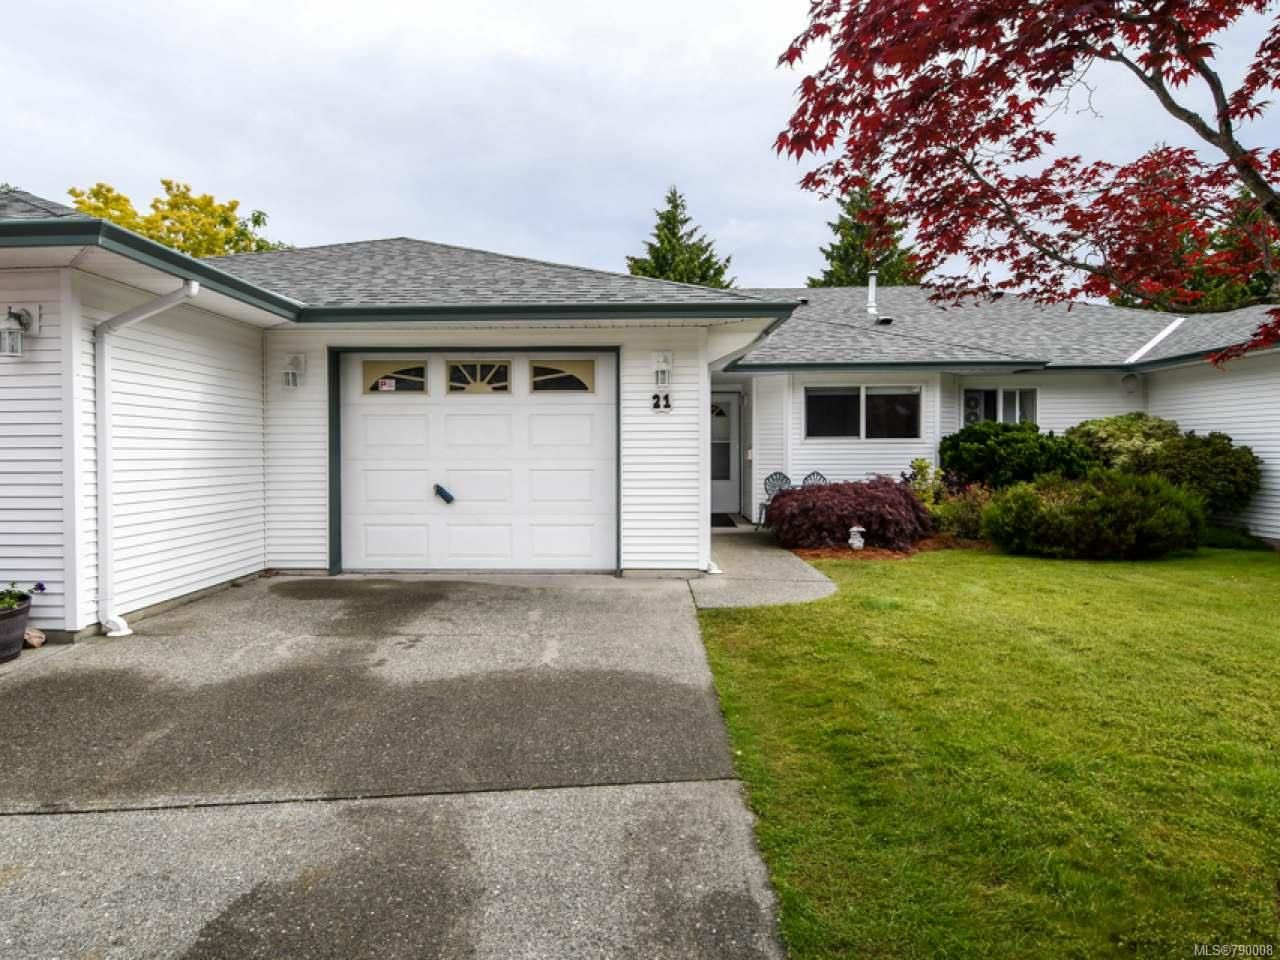 Main Photo: 21 396 HARROGATE ROAD in CAMPBELL RIVER: CR Willow Point Row/Townhouse for sale (Campbell River)  : MLS®# 790008